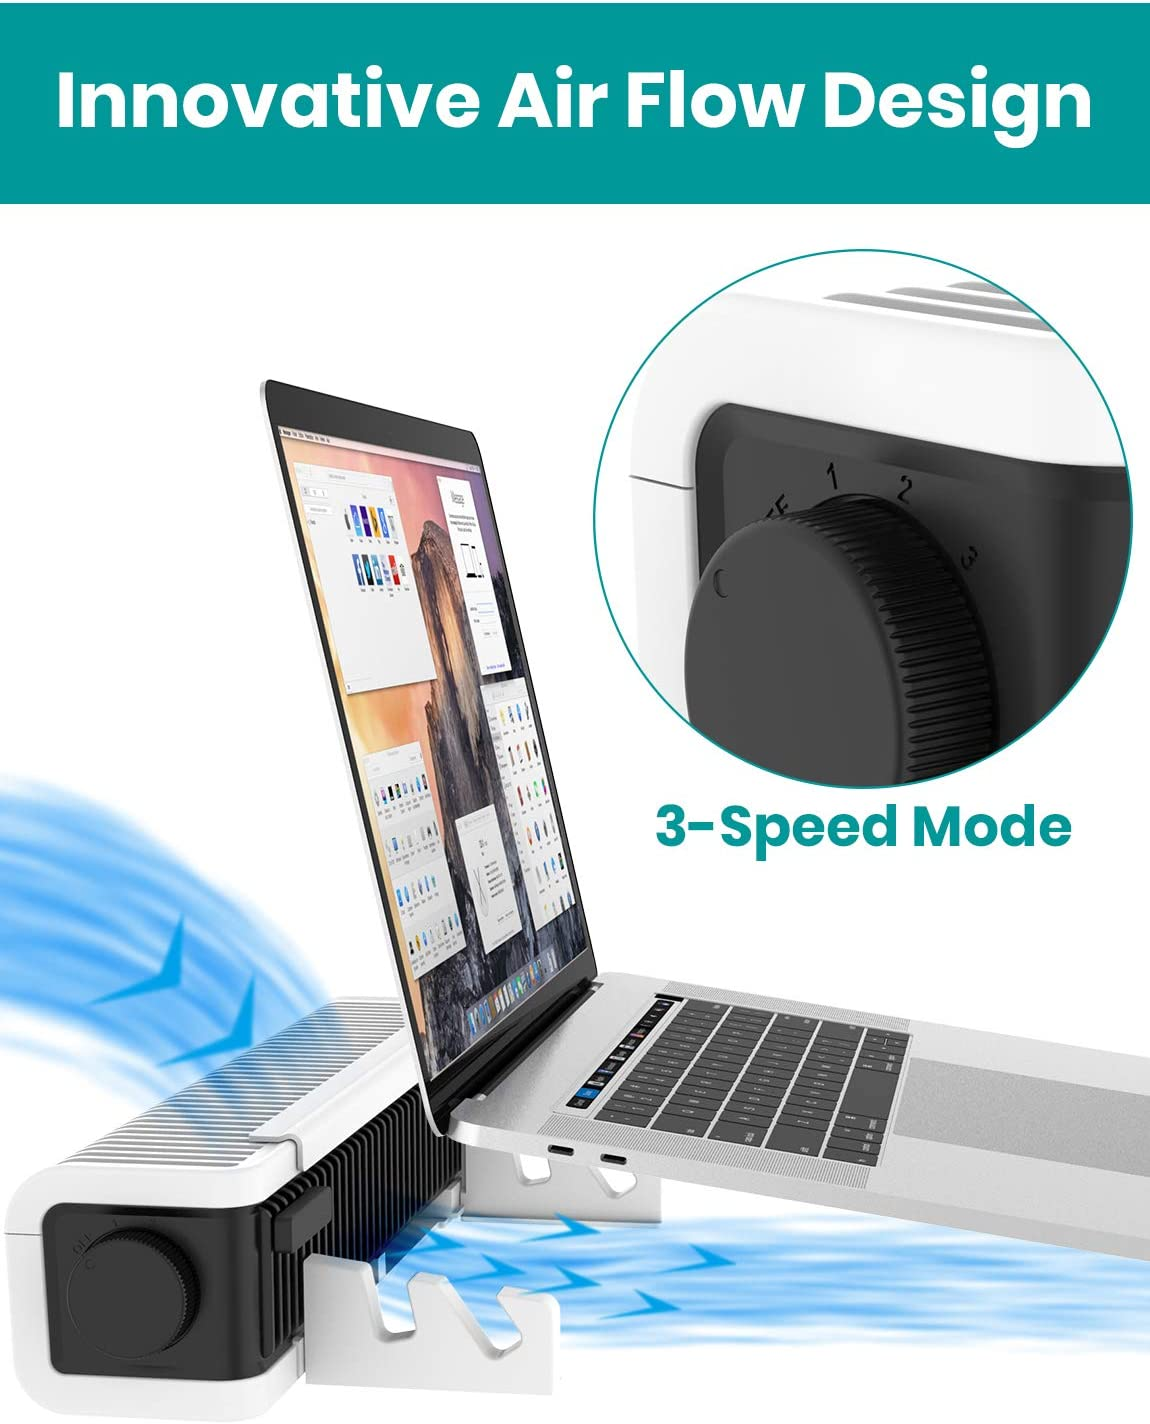 Klearlook Laptop Cooler Adjustable Cooling Stand,USB Laptop Cross-Flow Cooling Fan /&Pad Multi Function Turbine Cooler Cooling Holder for Laptop Tablet Phone 3-Speed,Vertical and Horizontal Standing